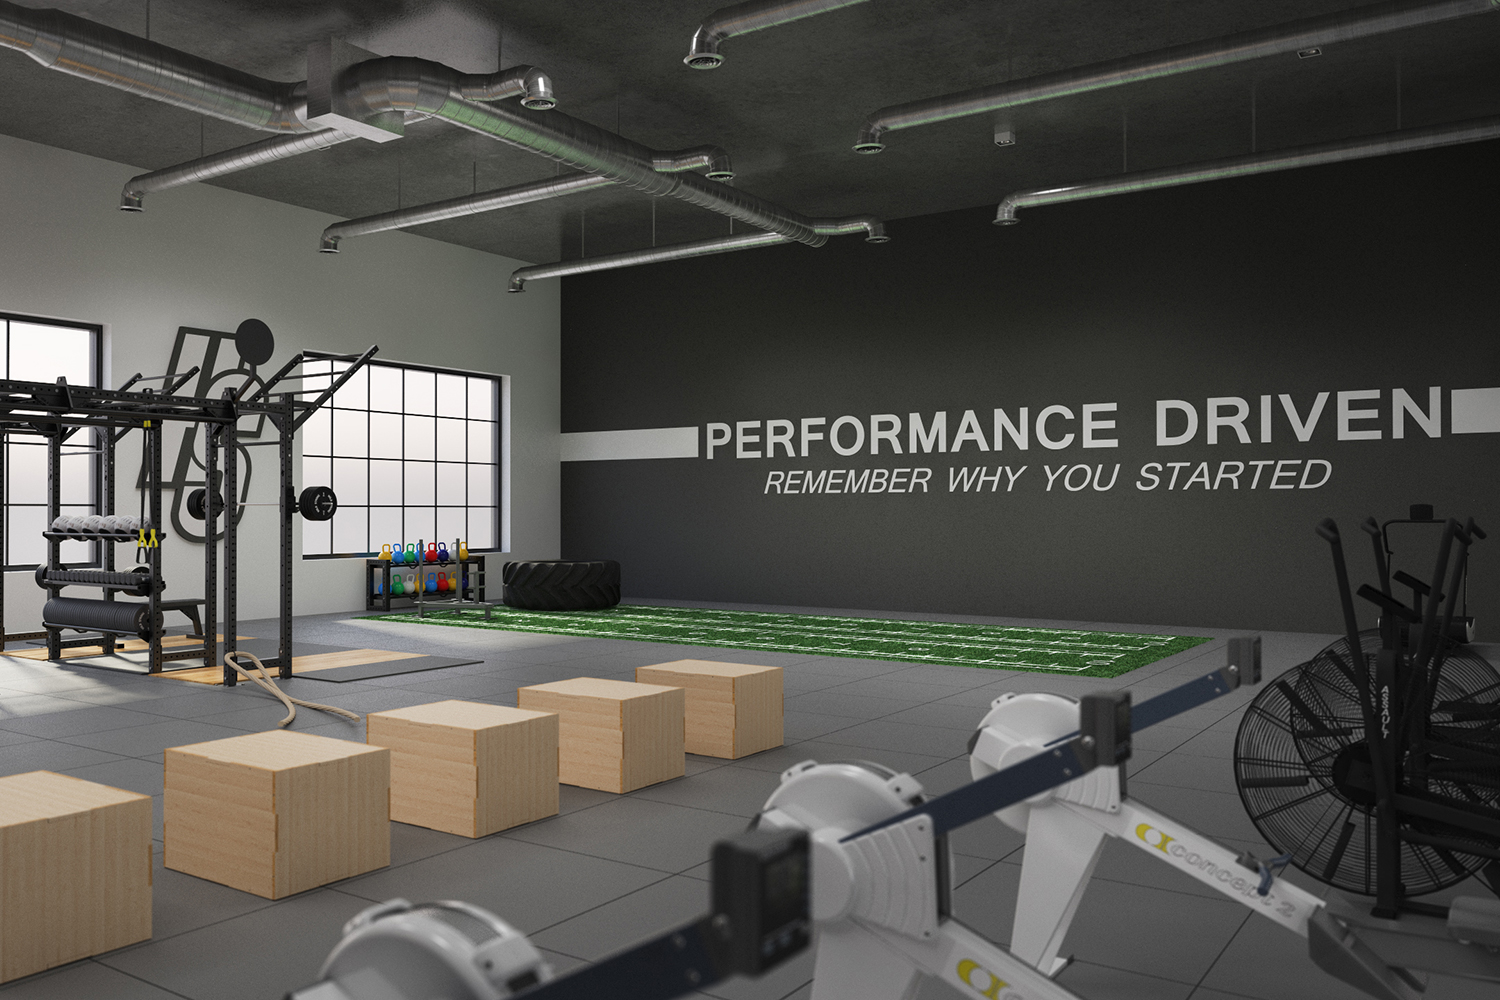 Performance Center - Gym flooring